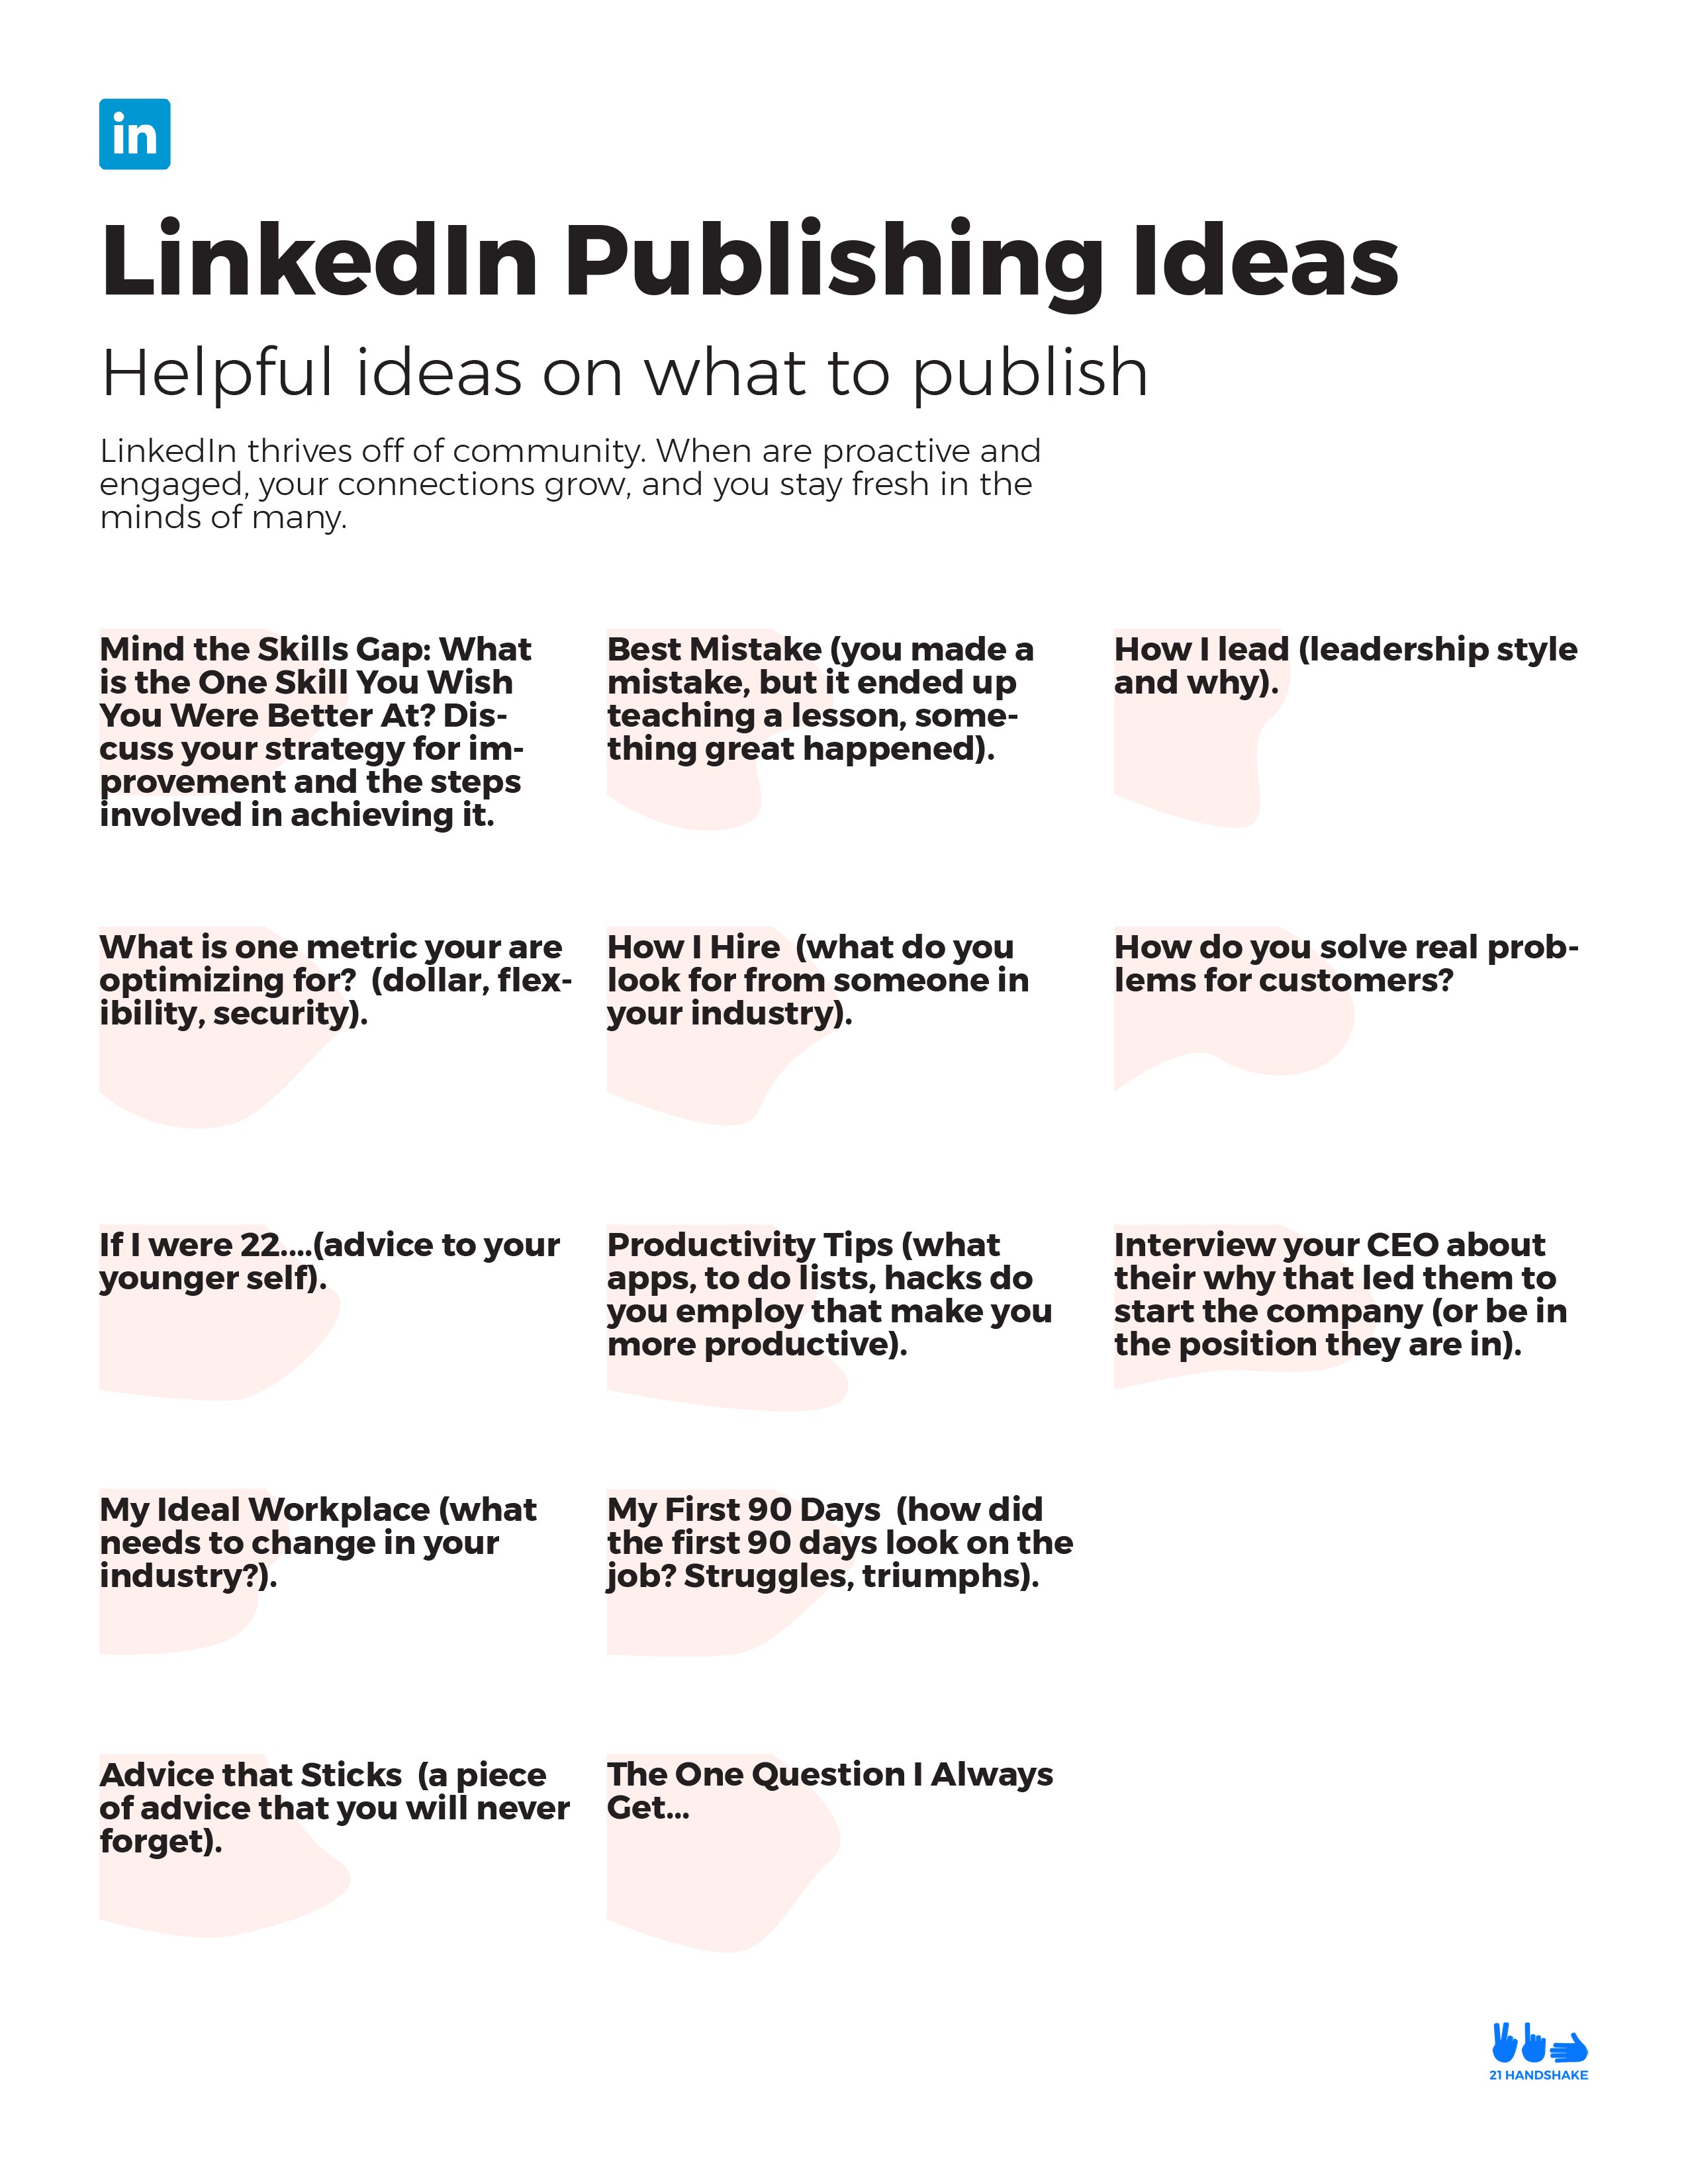 LinkedIn Publication Ideas PDF Resource